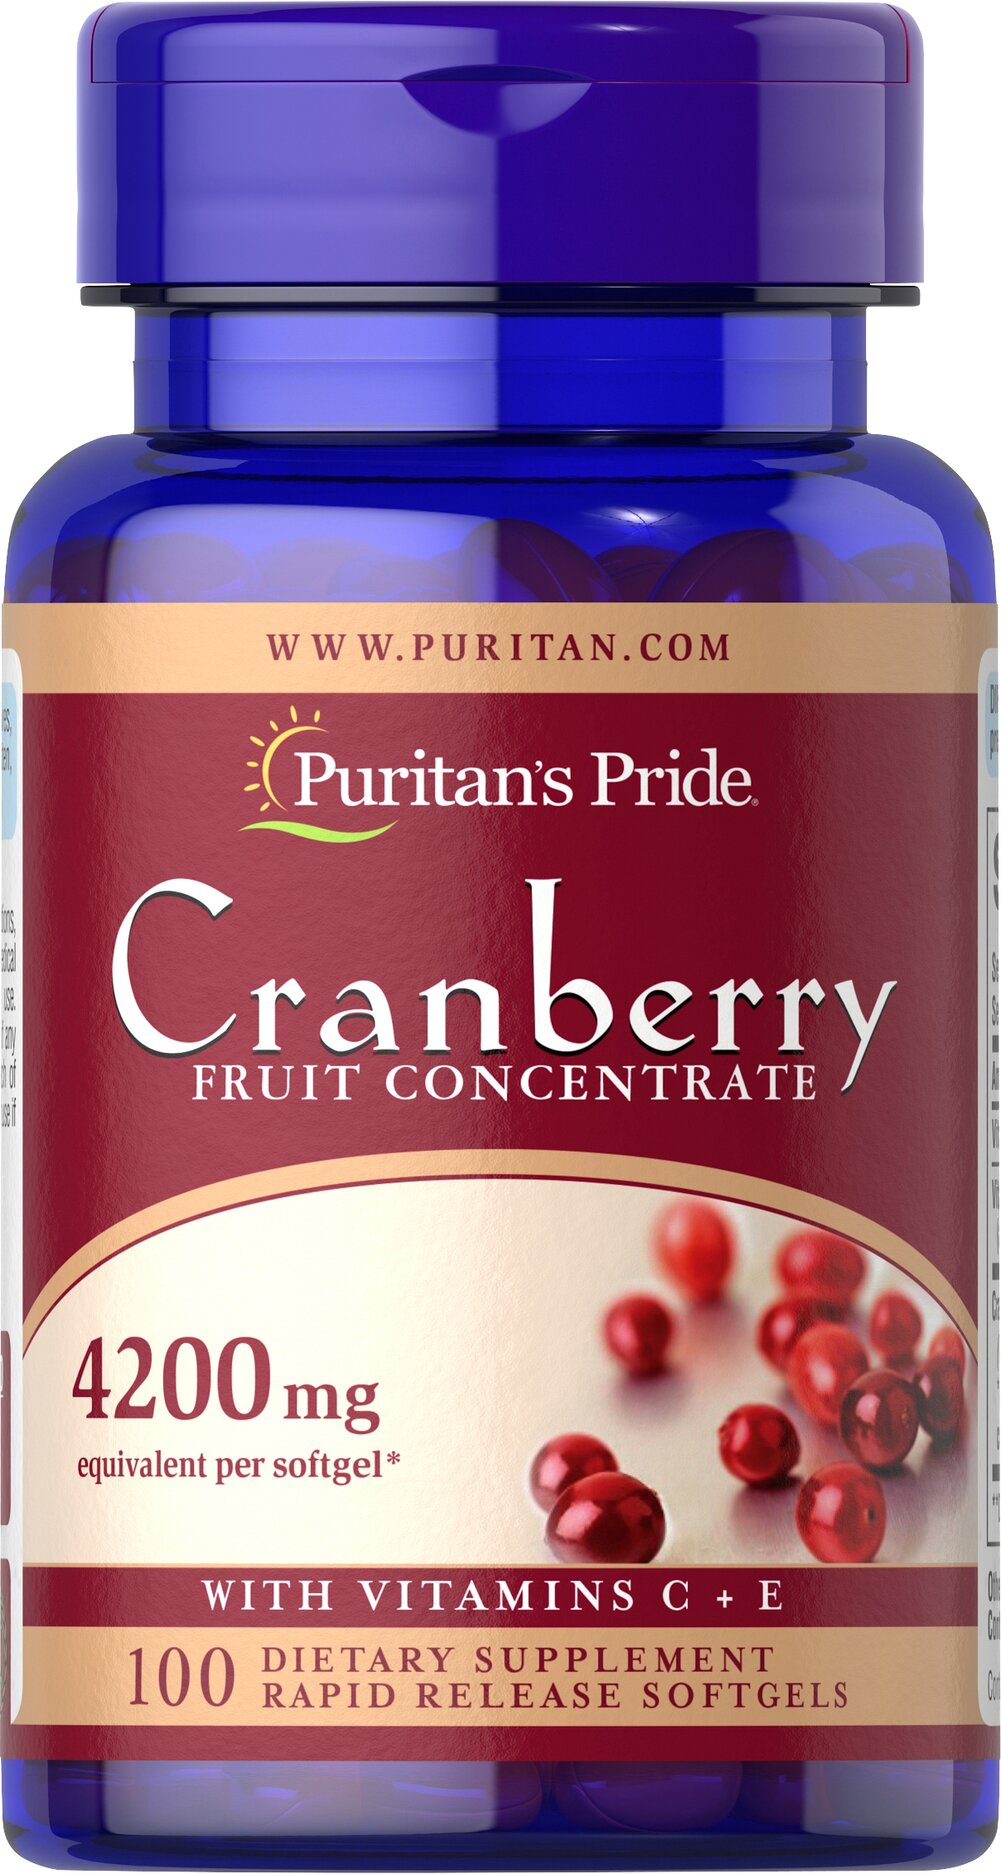 Cranberry Fruit Concentrate with C & E 4200 mg <p>This product has the benefits of concentrated cranberry without the unnecessary sugar and calories. Each of our concentrated (4200 mg) Cranberry softgels provide the equivalent of (8400 mg) of fresh cranberries plus (40 mg) of Vitamin C and 6 IU of Vitamin E.  Adults can take two softgels 3 times daily, after meals.</p> 100 Softgels 4200 mg $7.19